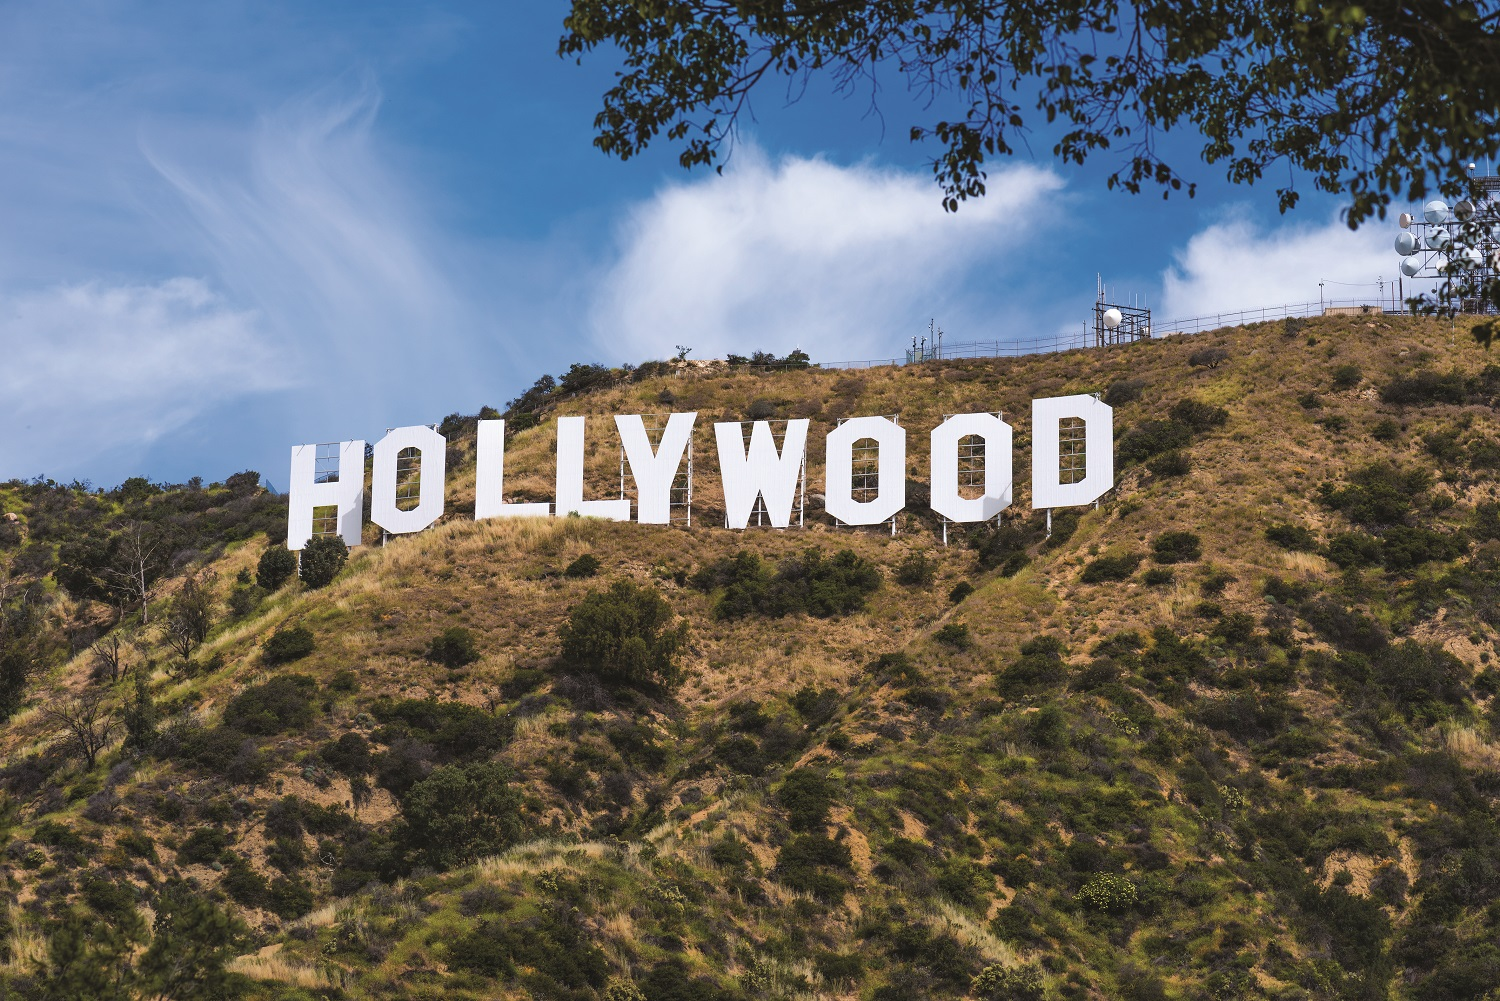 Hollywood - Los Angeles | Crédito: Shutterstock